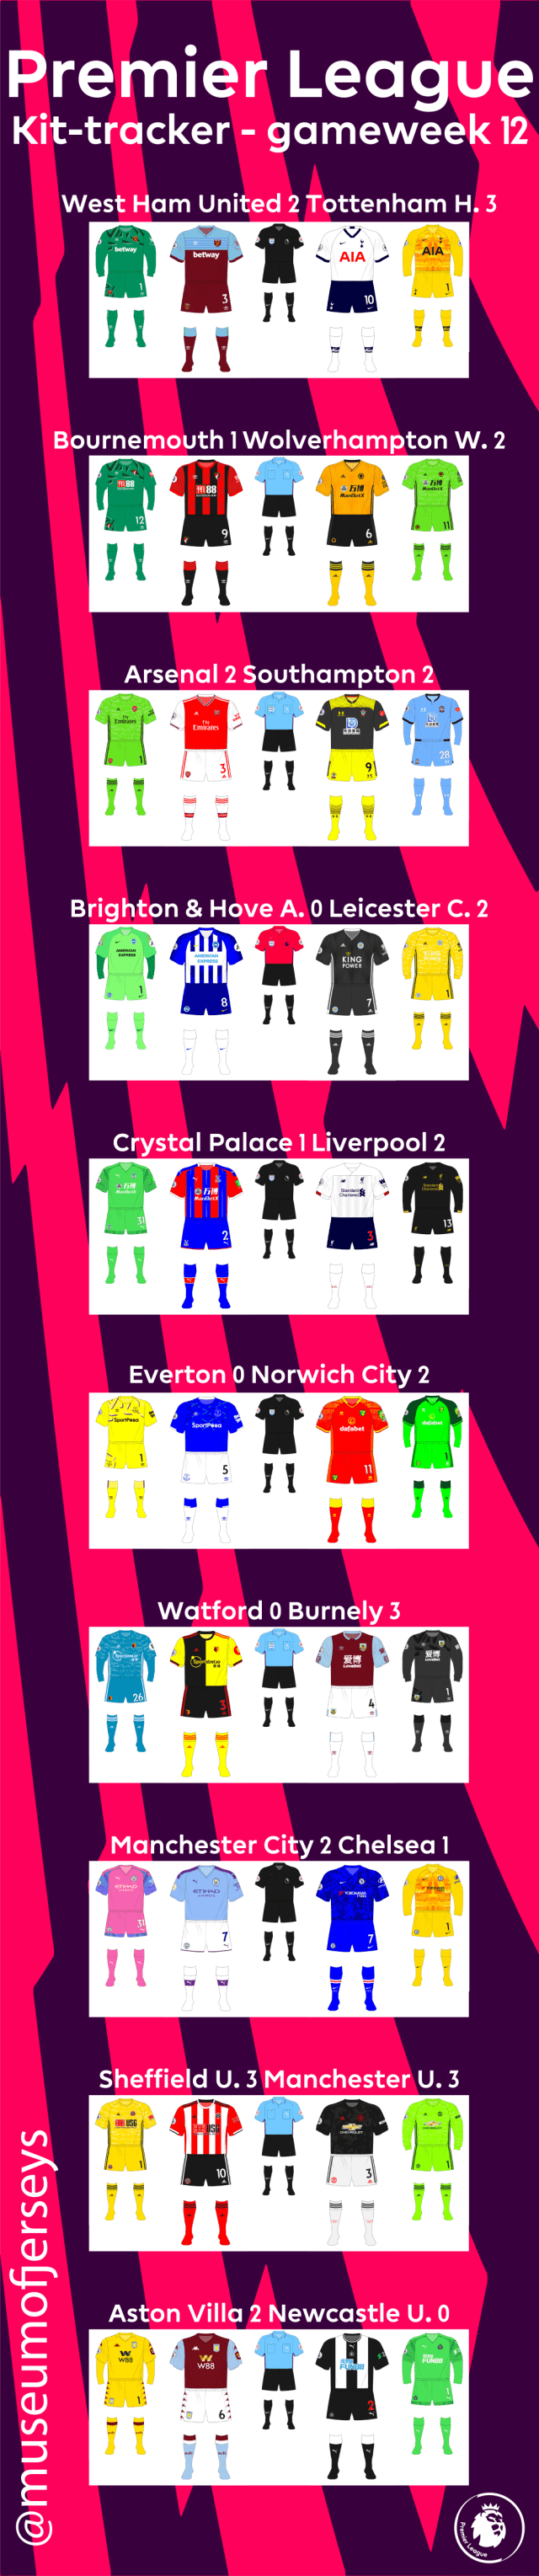 2019-2020-Premier-League-Kit-Tracker-Gameweek-13-long-01